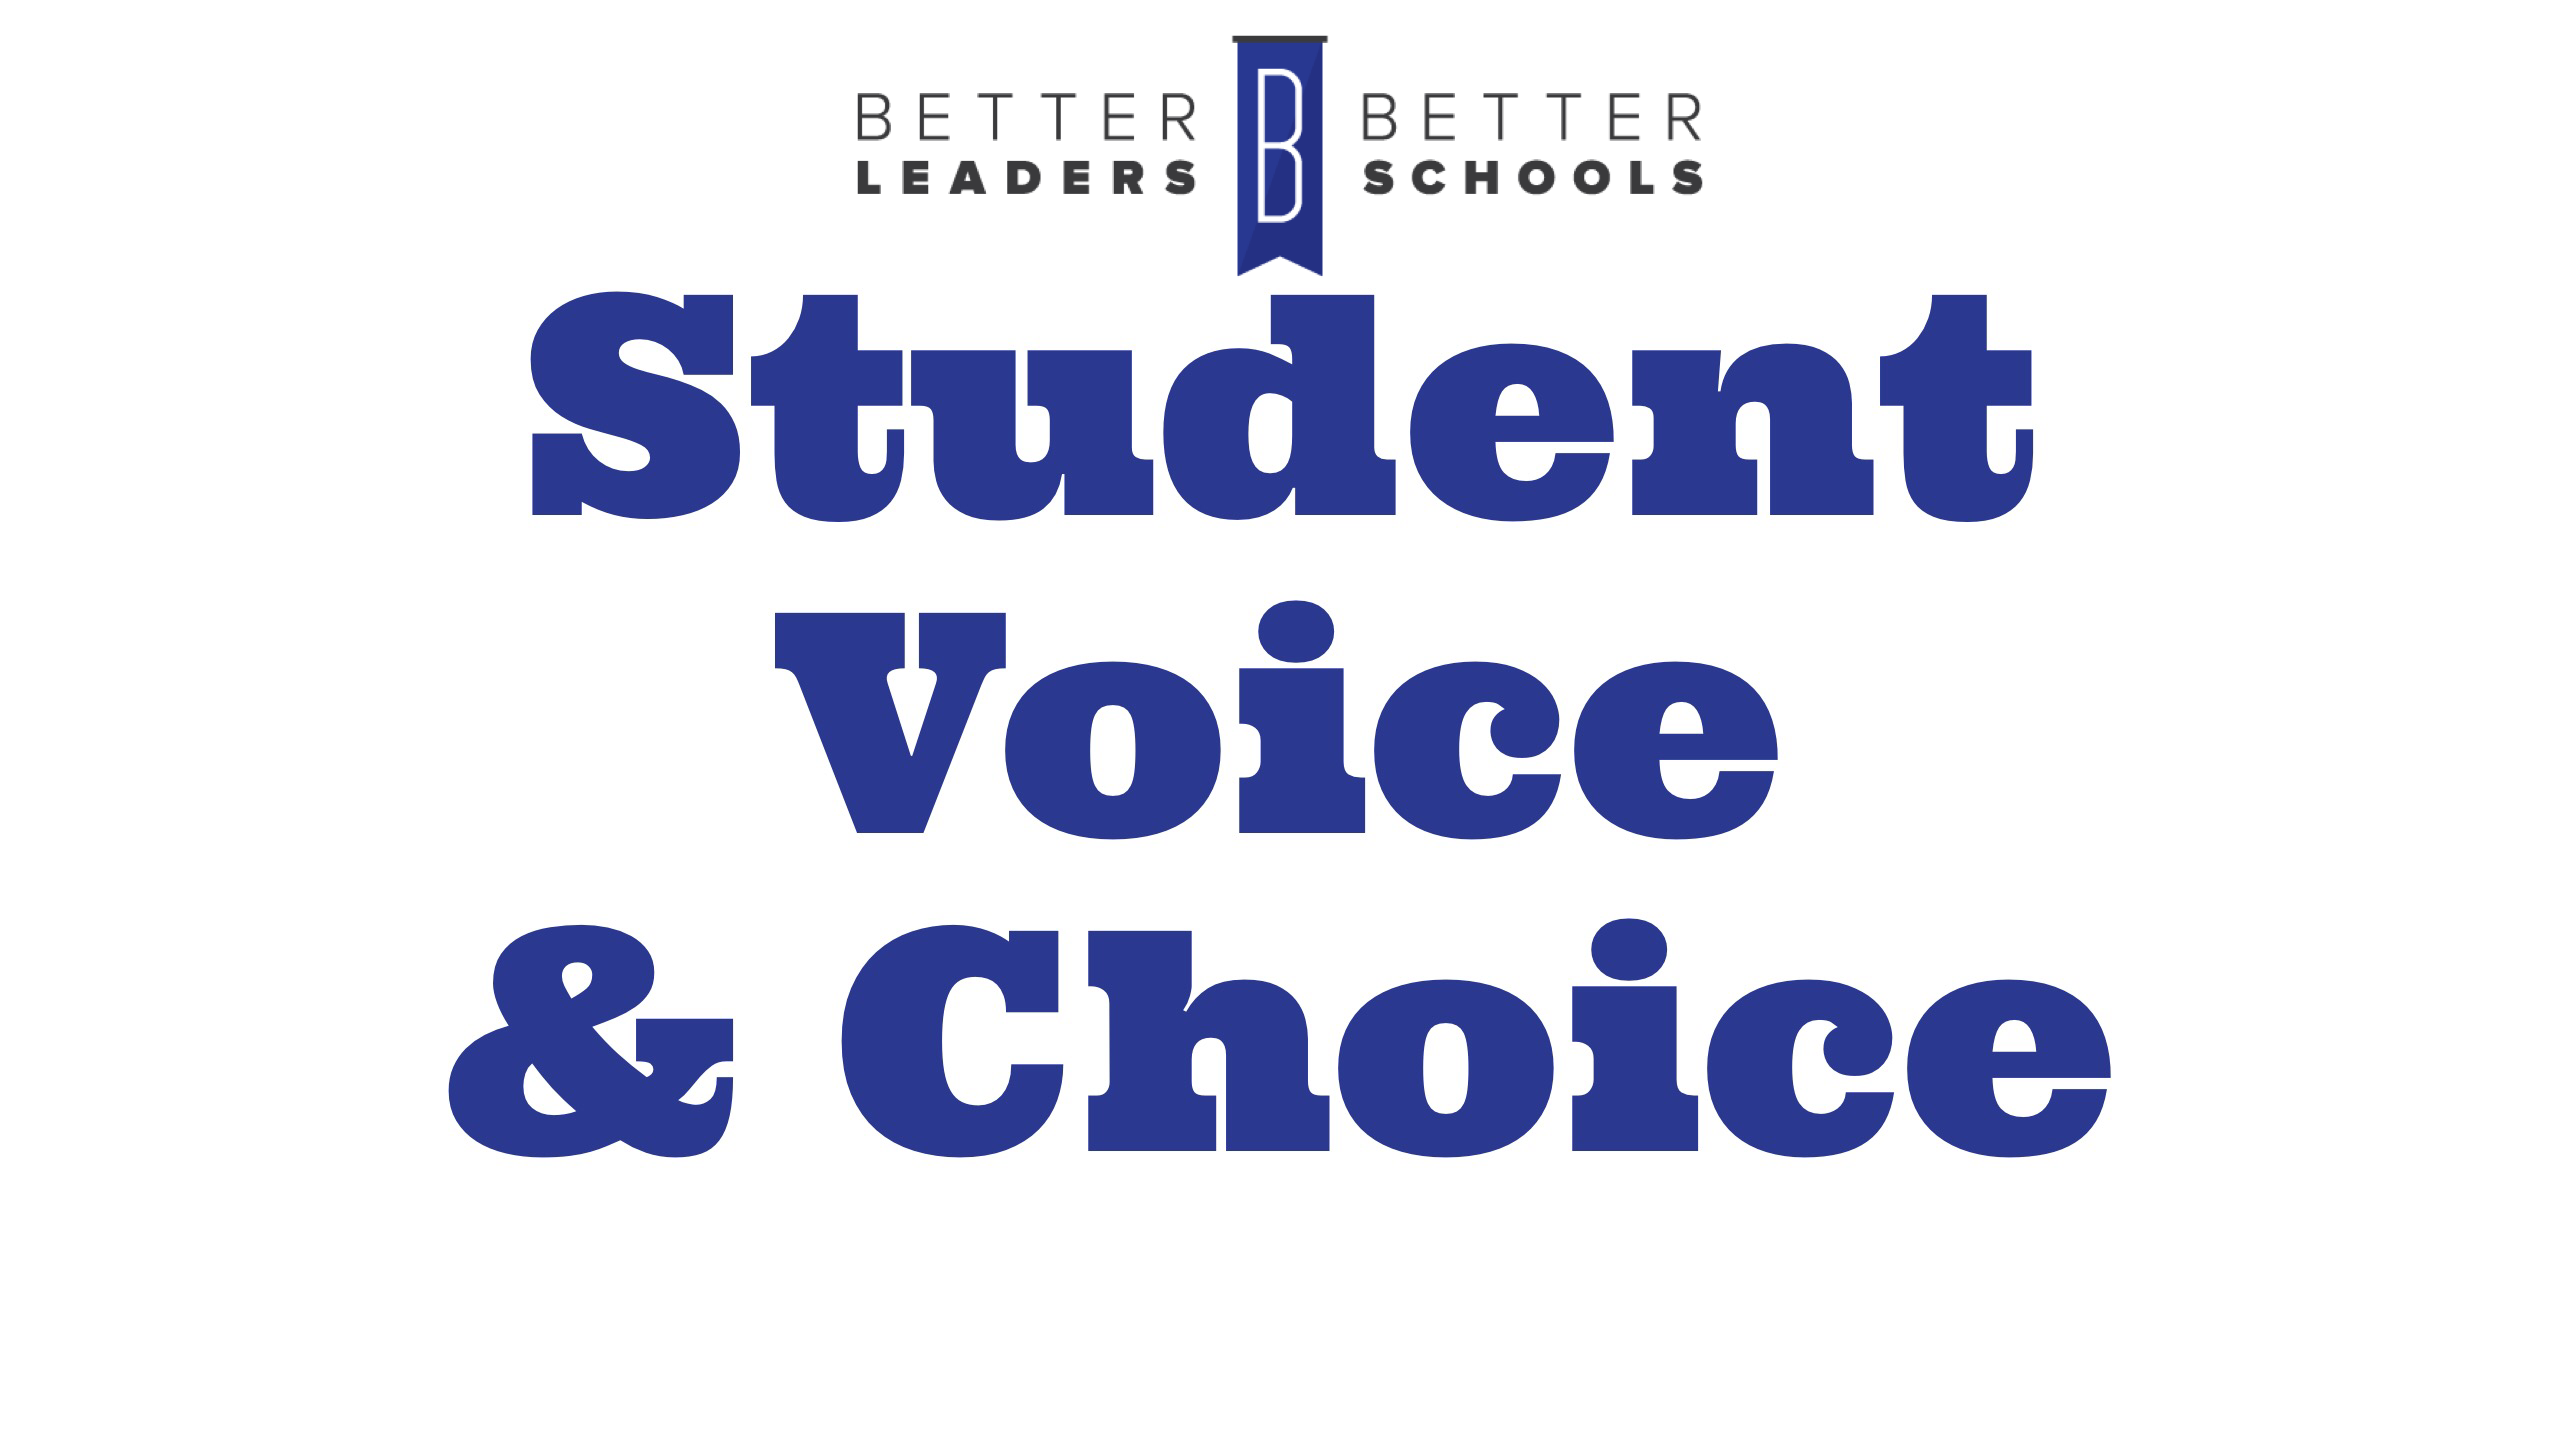 Bill Ziegler on student choice